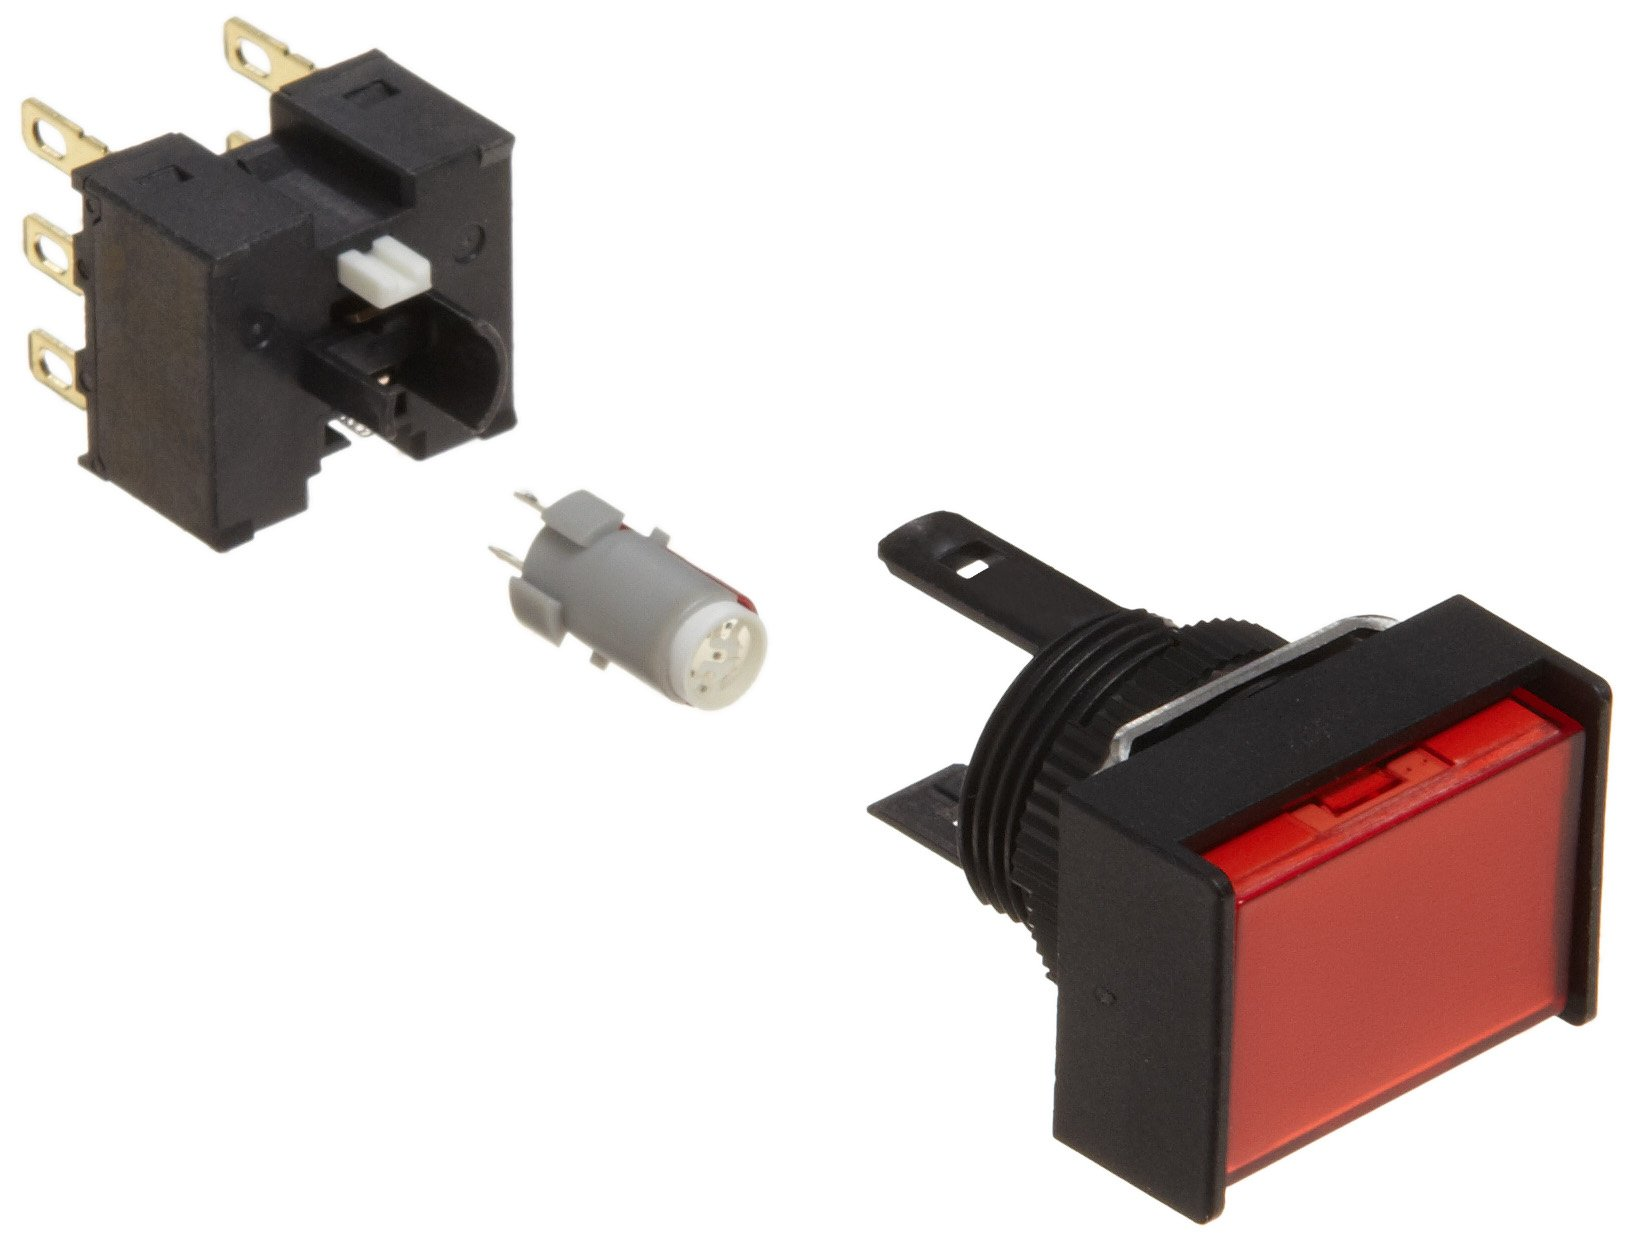 Omron A165L-JRA-24D-2 Two Way Guard Type Pushbutton and Switch, Solder Terminal, IP65 Oil-Resistant, 16mm Mounting Aperture, LED Lighted, Alternate Operation, Rectangular, Red, 24 VDC Rated Voltage, Double Pole Double Throw Contacts